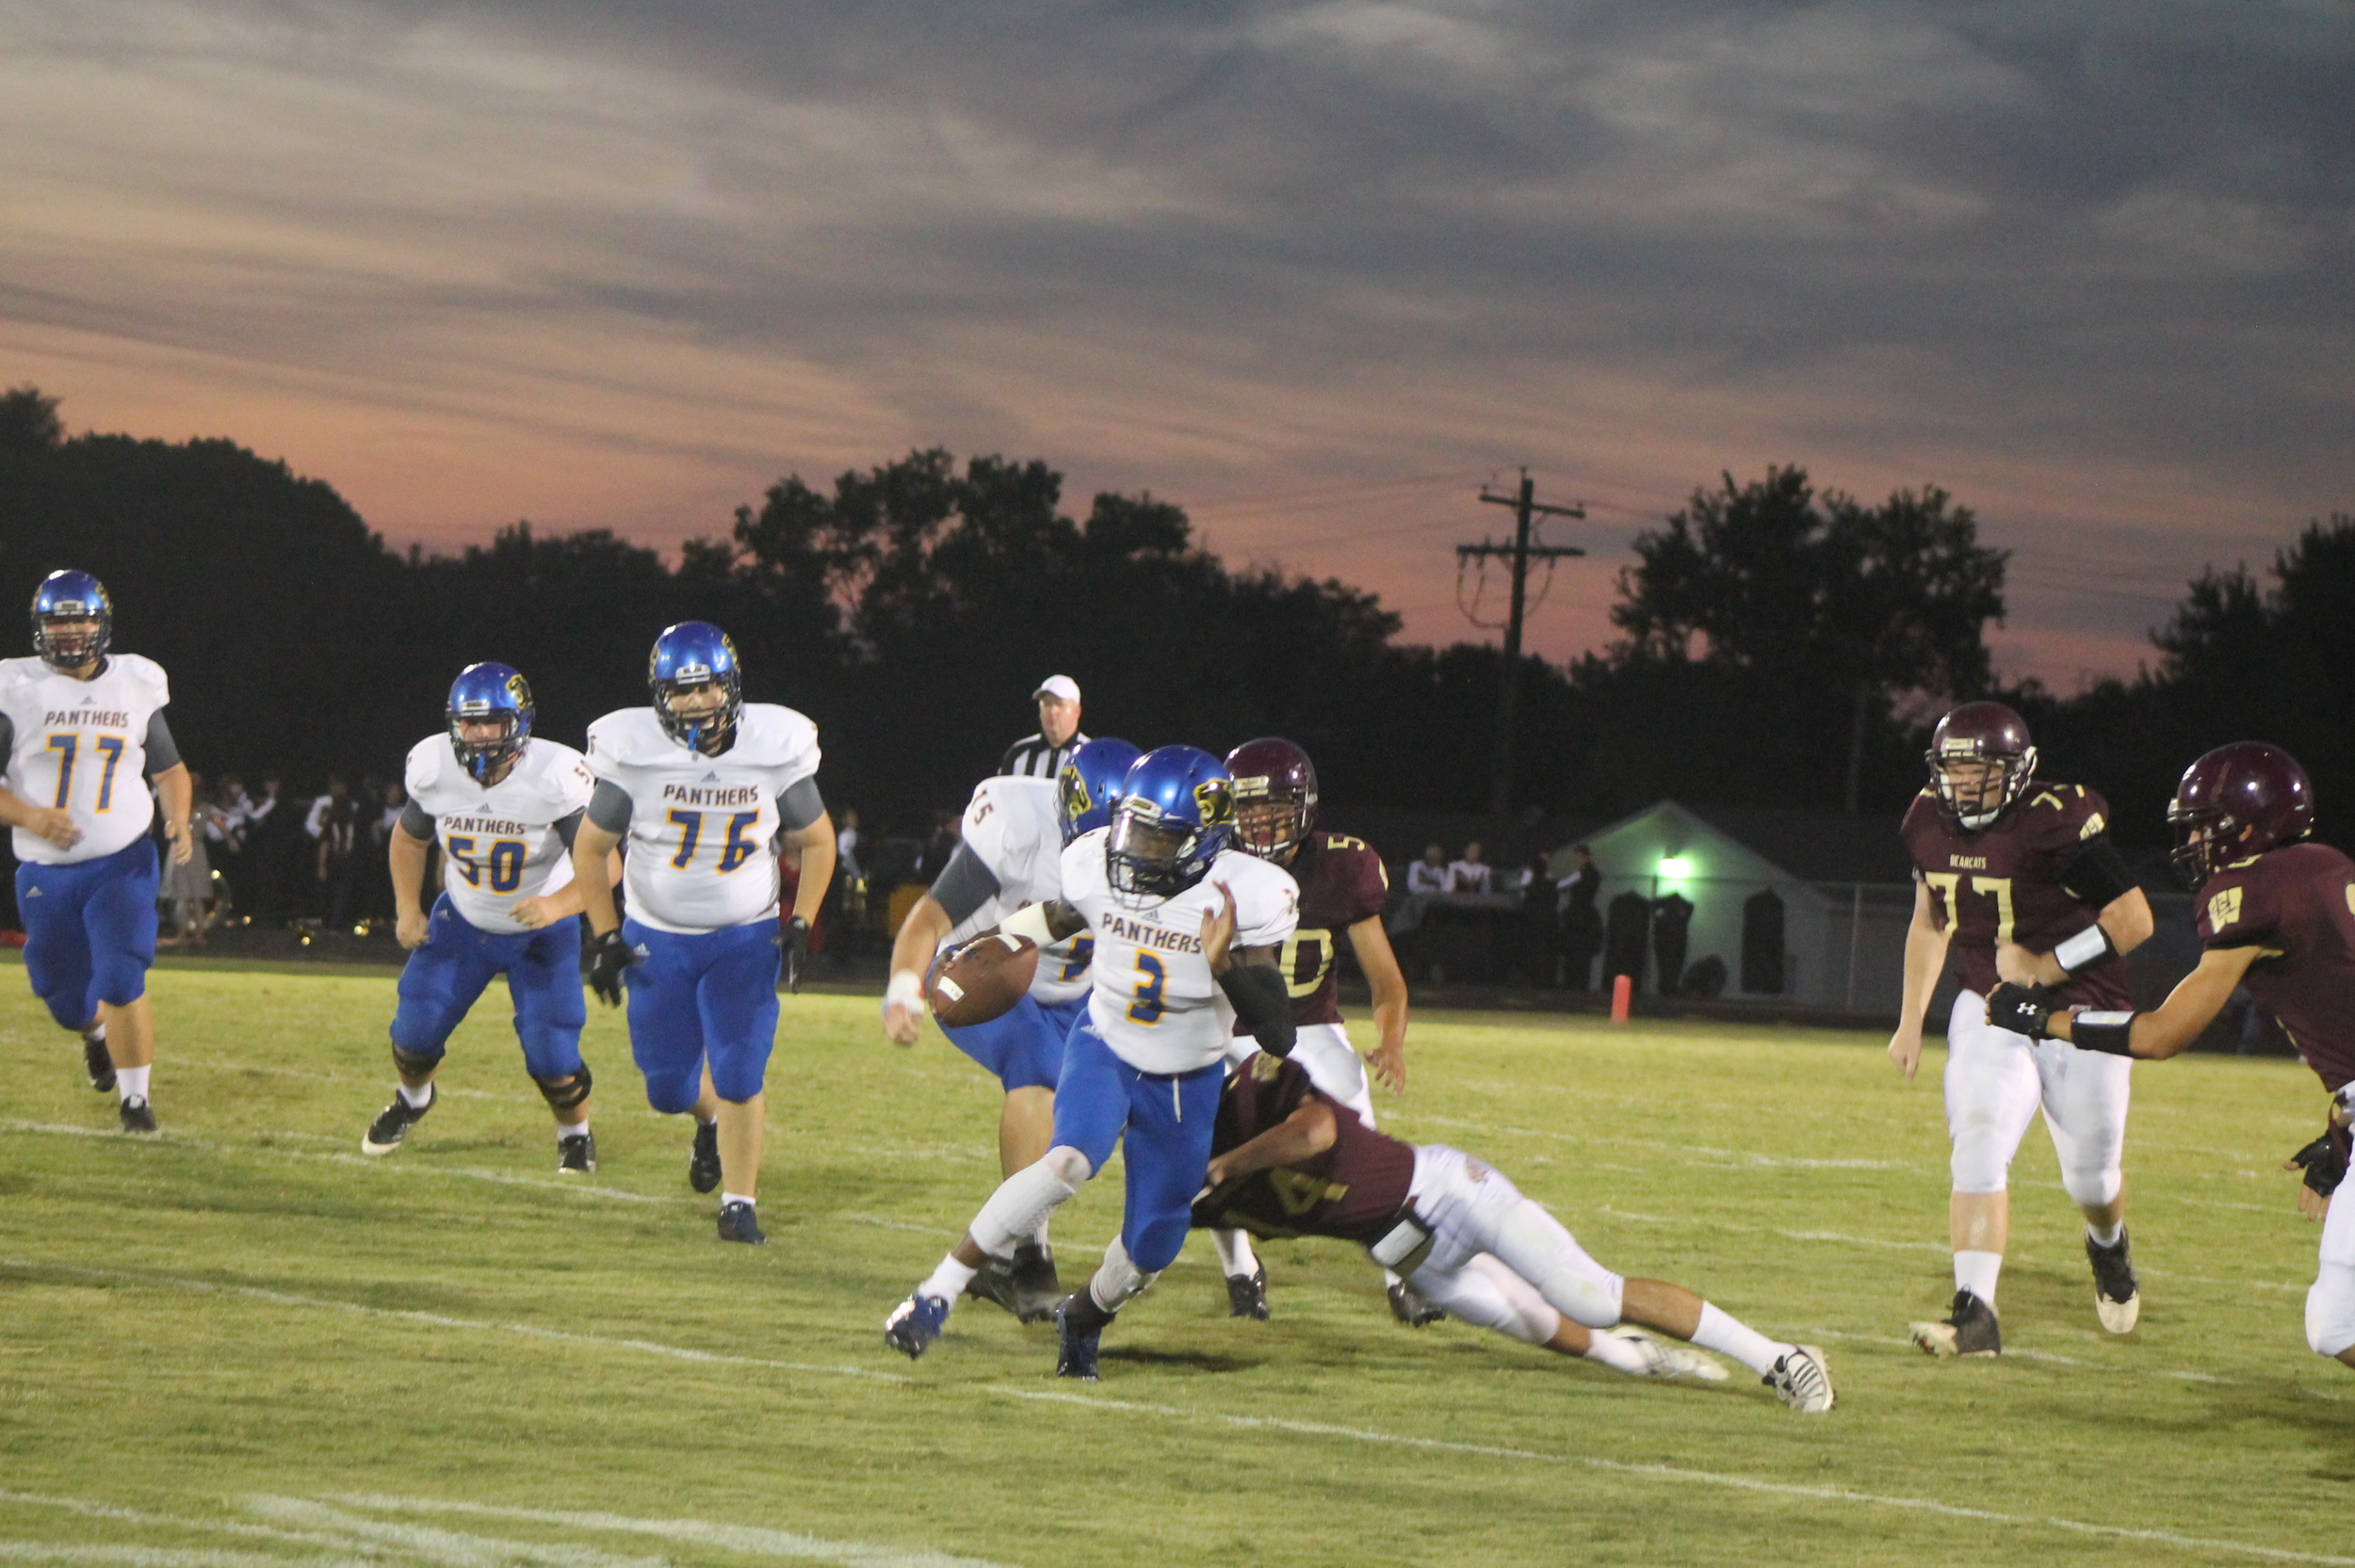 (Photo by Adam Routon) Versache Buchanan (3) escaping a tackle on his way to the end zone for North Lamar.